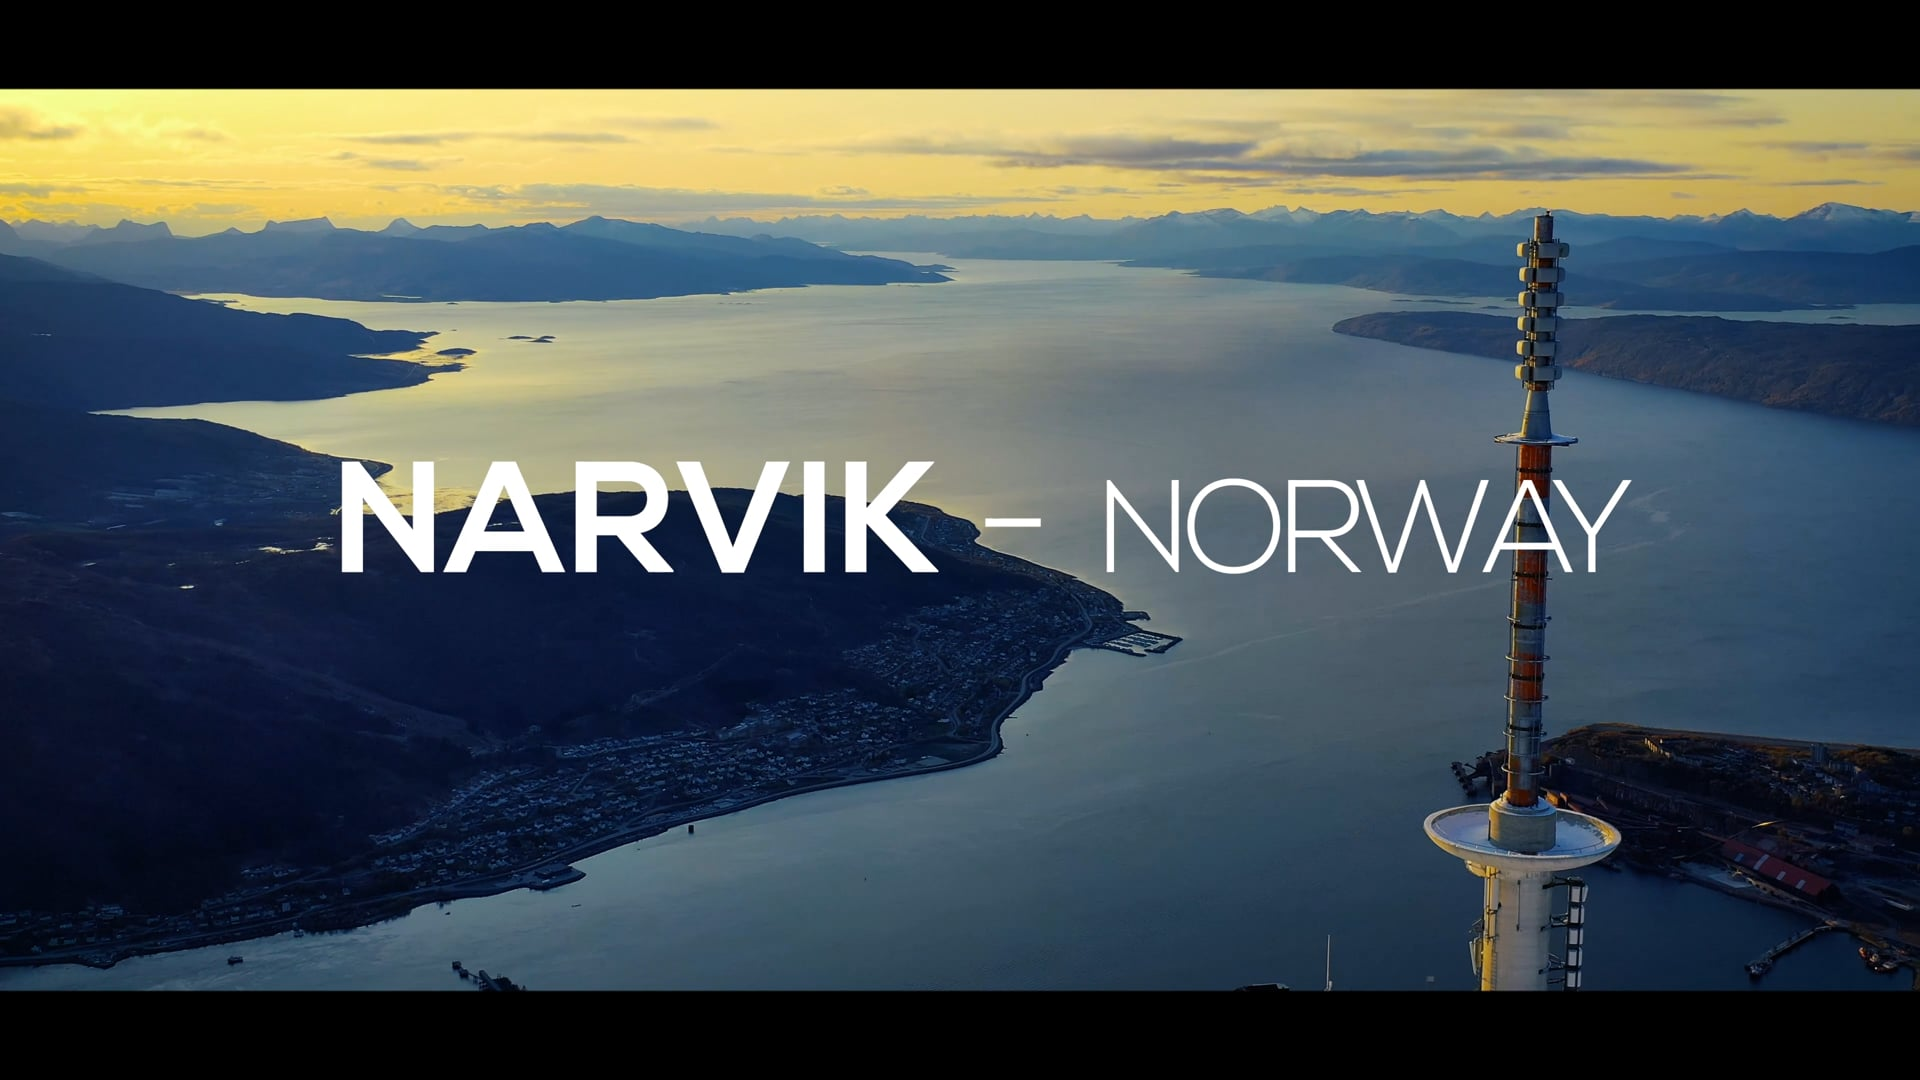 Narvik Harbour - Welcome to the journey